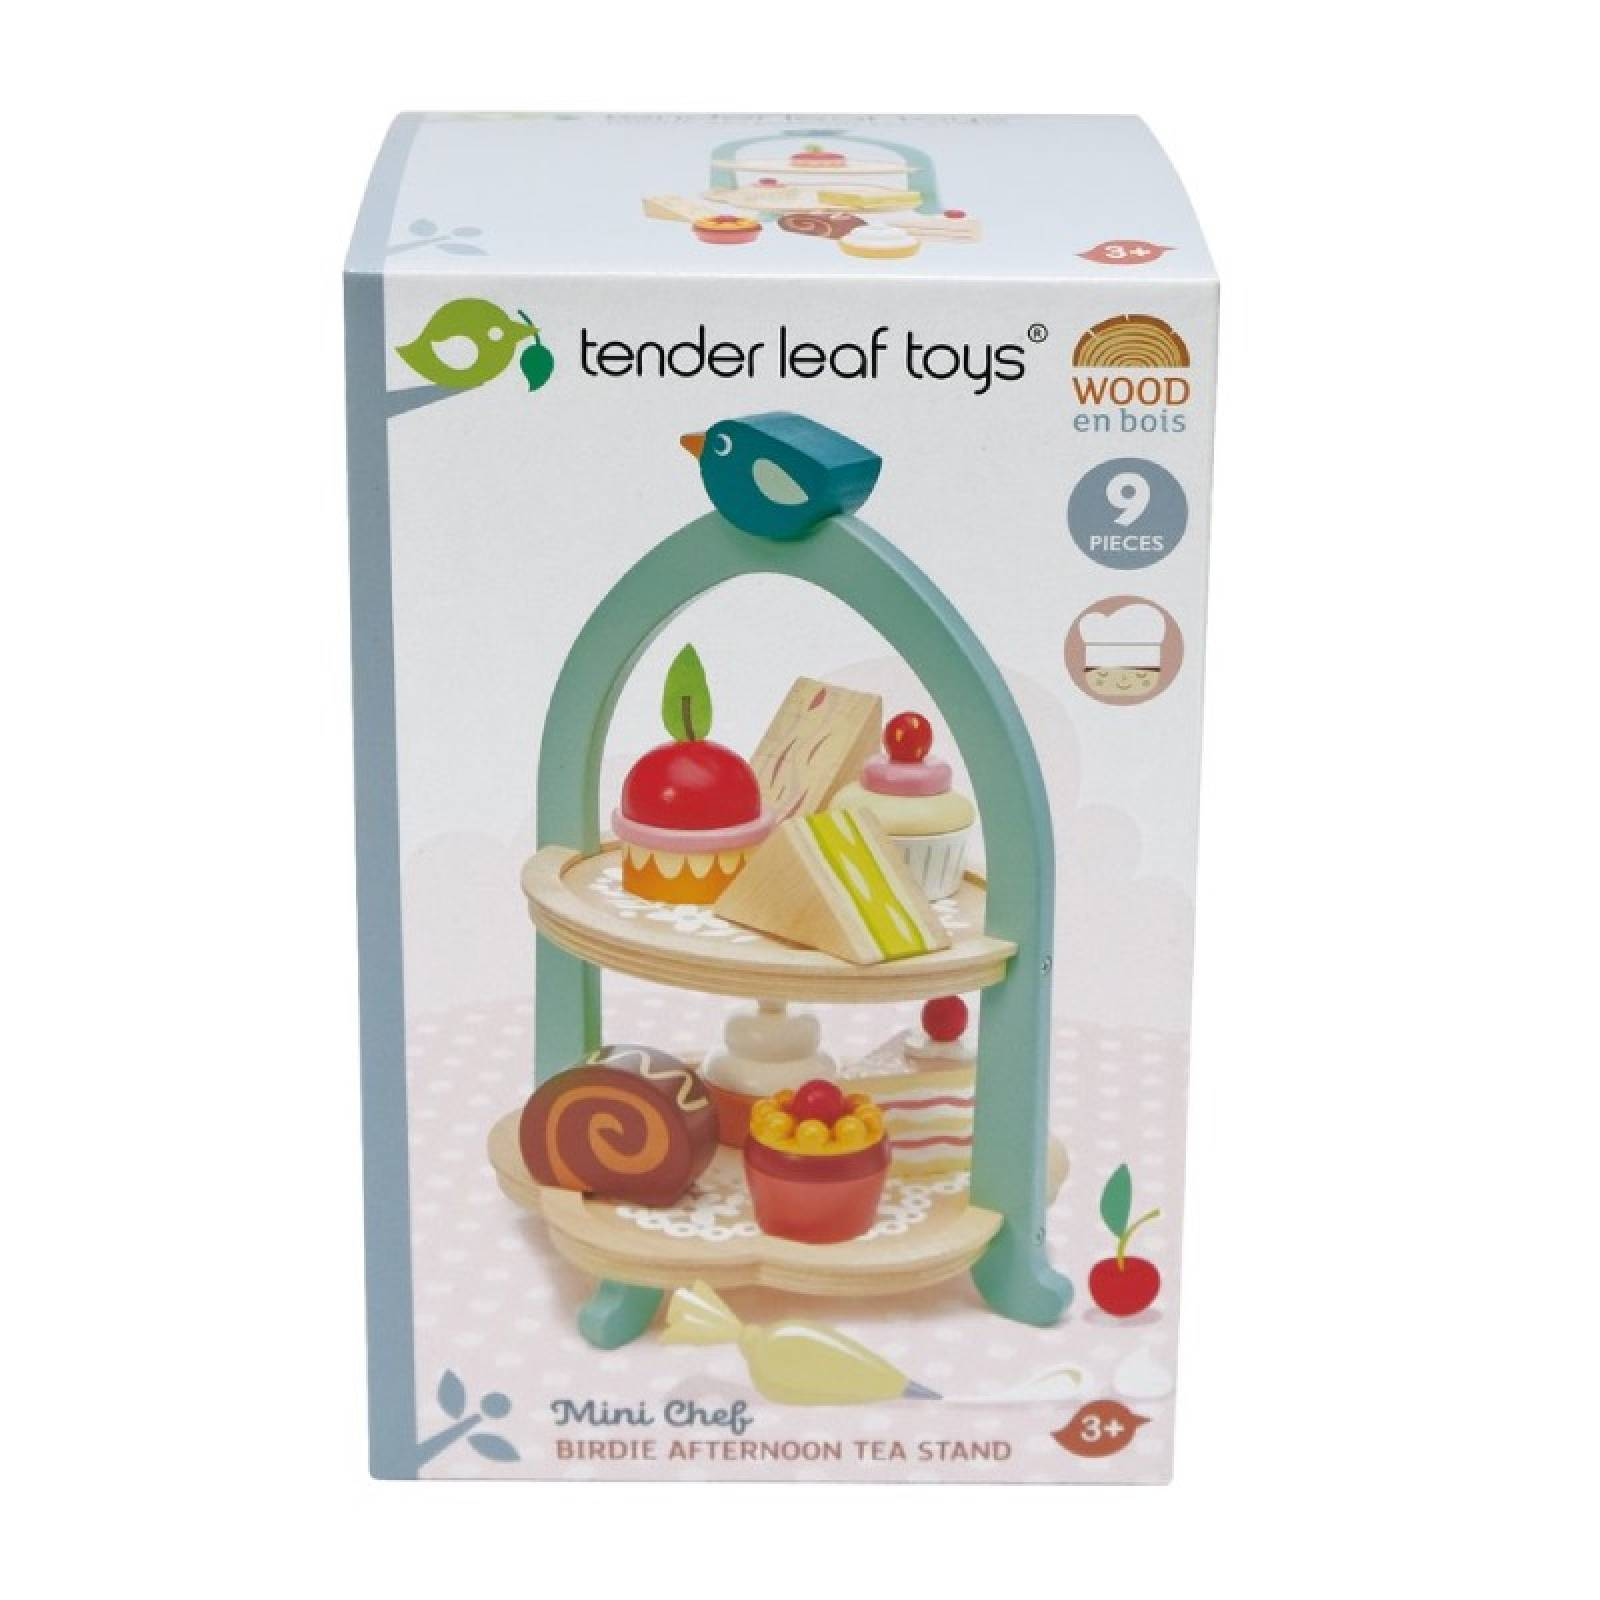 Birdie Afternoon Tea Stand Wooden Play Food Set 3+ thumbnails